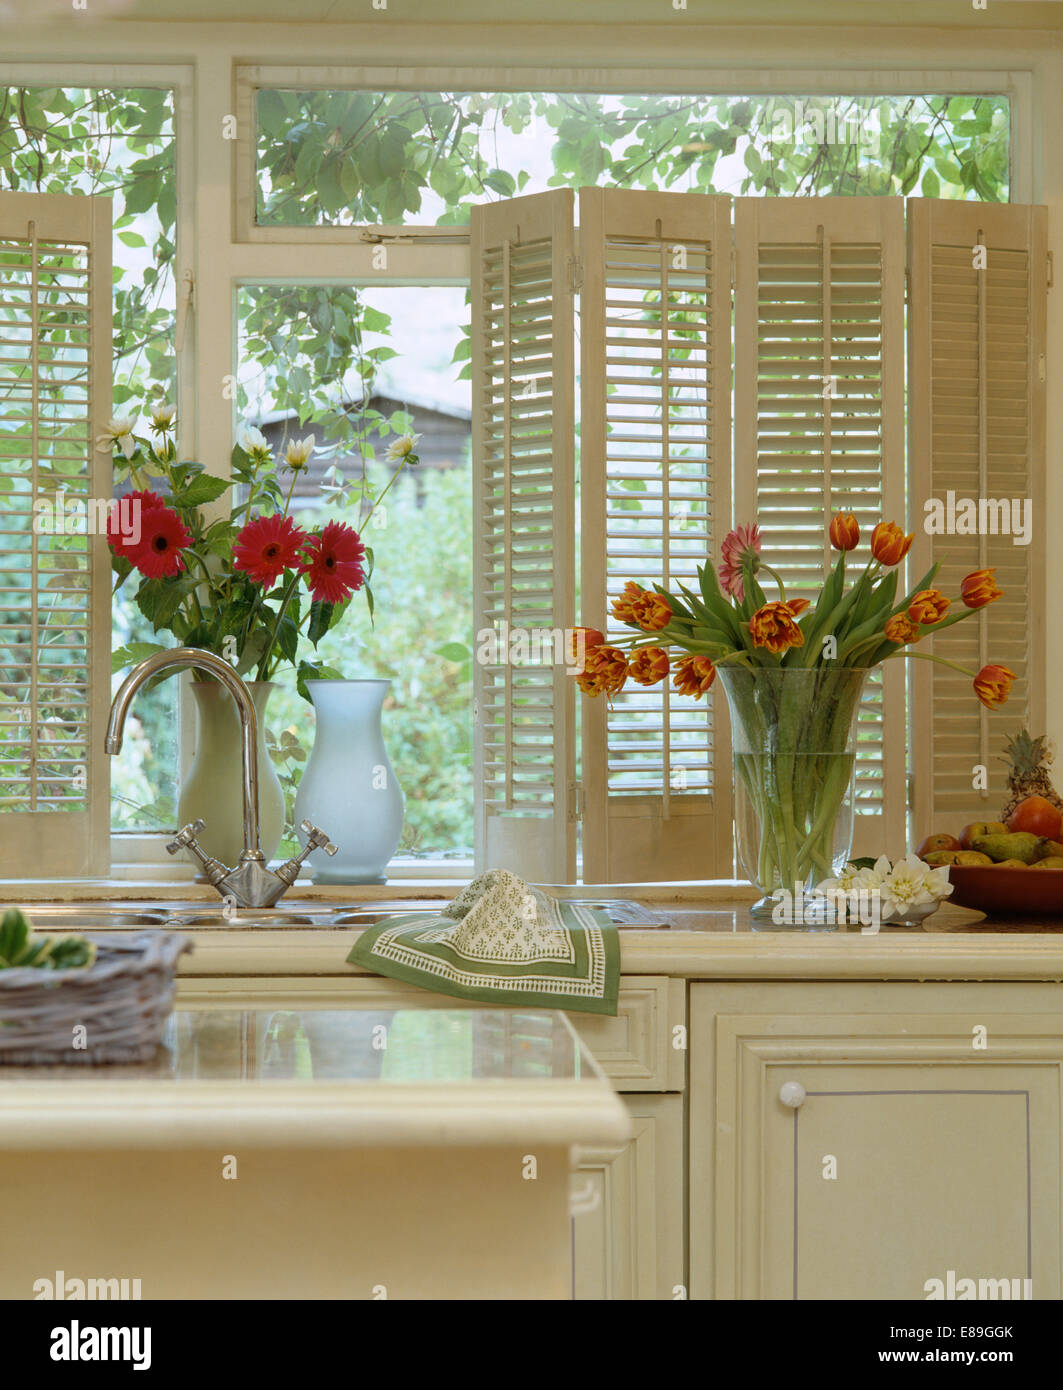 Red Gerberas And Orange Striped Tulips In Glass Vases On Kitchen Windowsill  With Cream Plantation Shutters